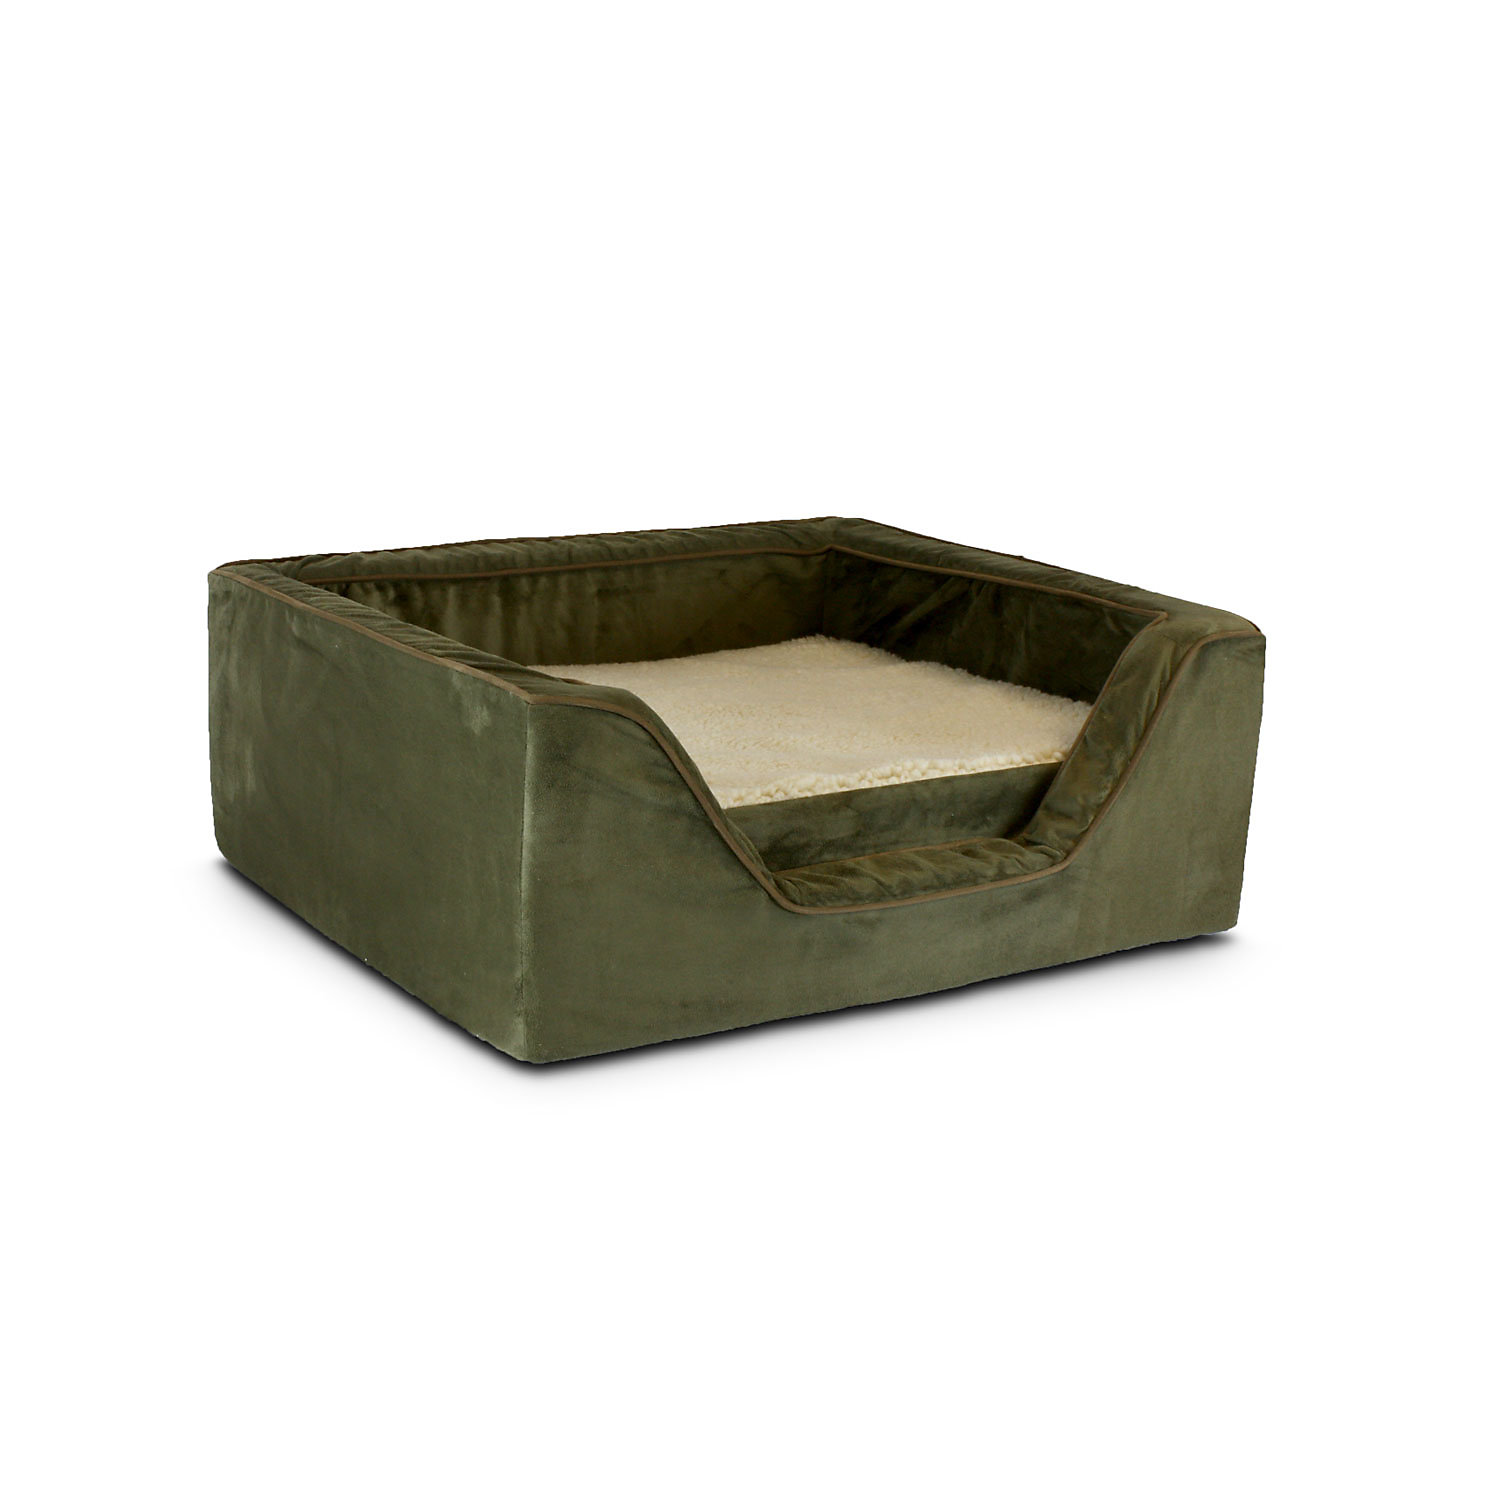 Snoozer Luxury Square Bed with Memory Foam in Olive with Coffee Cording 23 L X 19 W X 12 H Medium Green  Brown